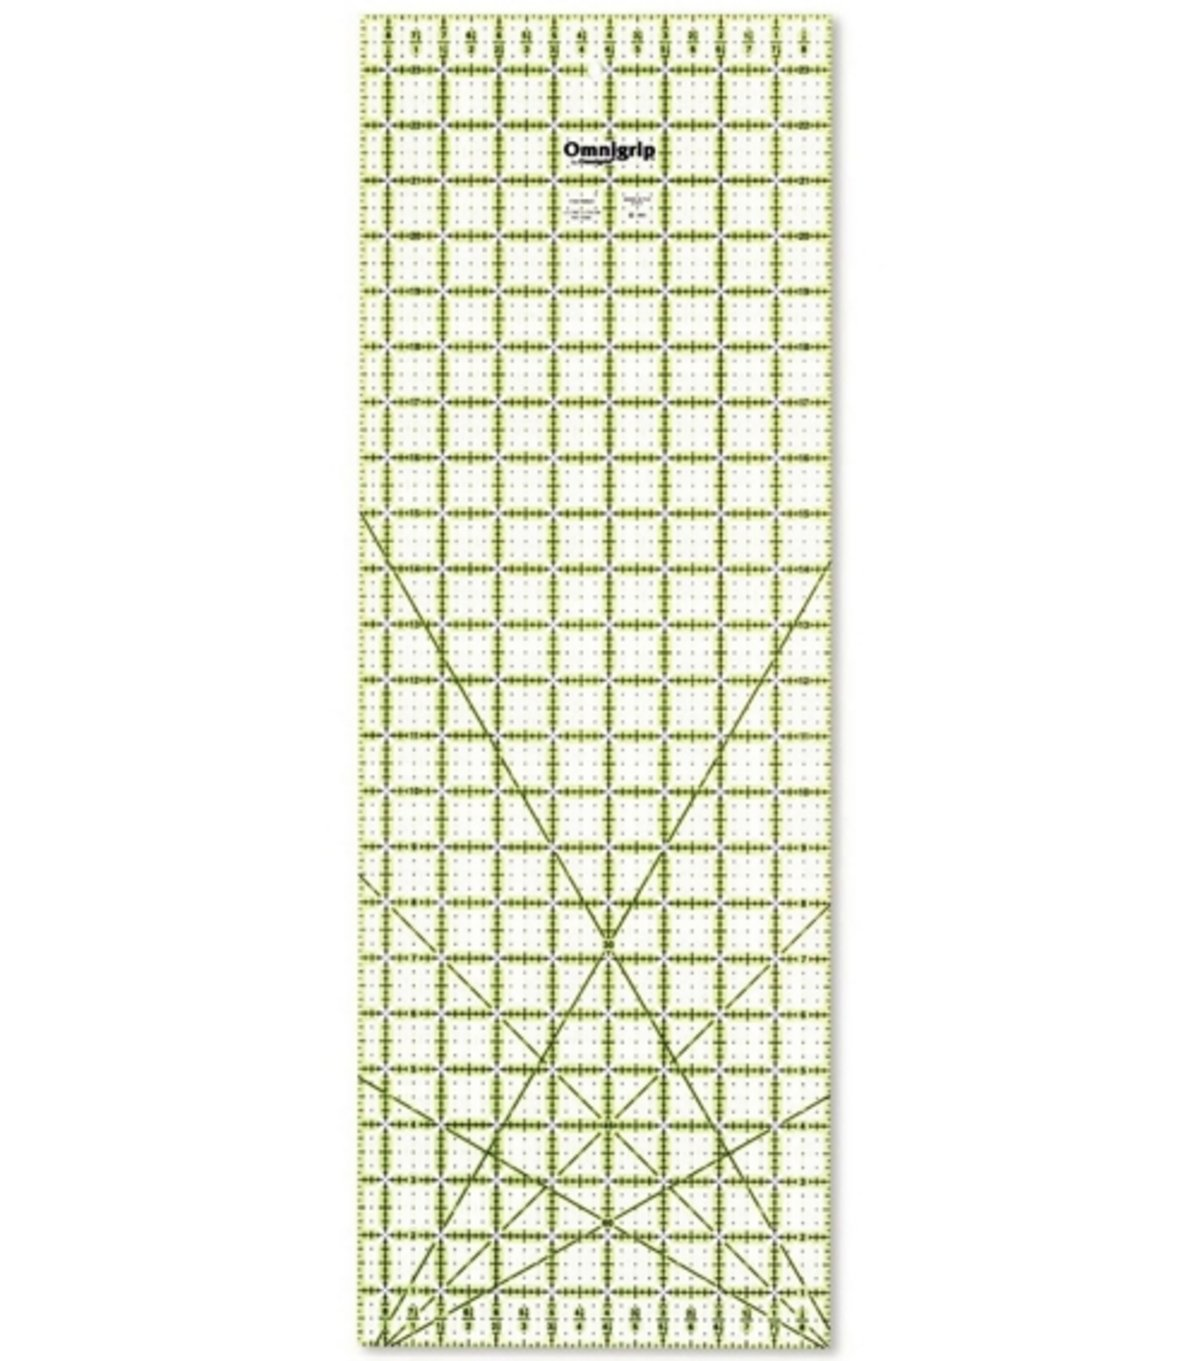 Omnigrip 8-1/2-Inch-by-24-Inch Non-Slip Quilter's Ruler RN8524